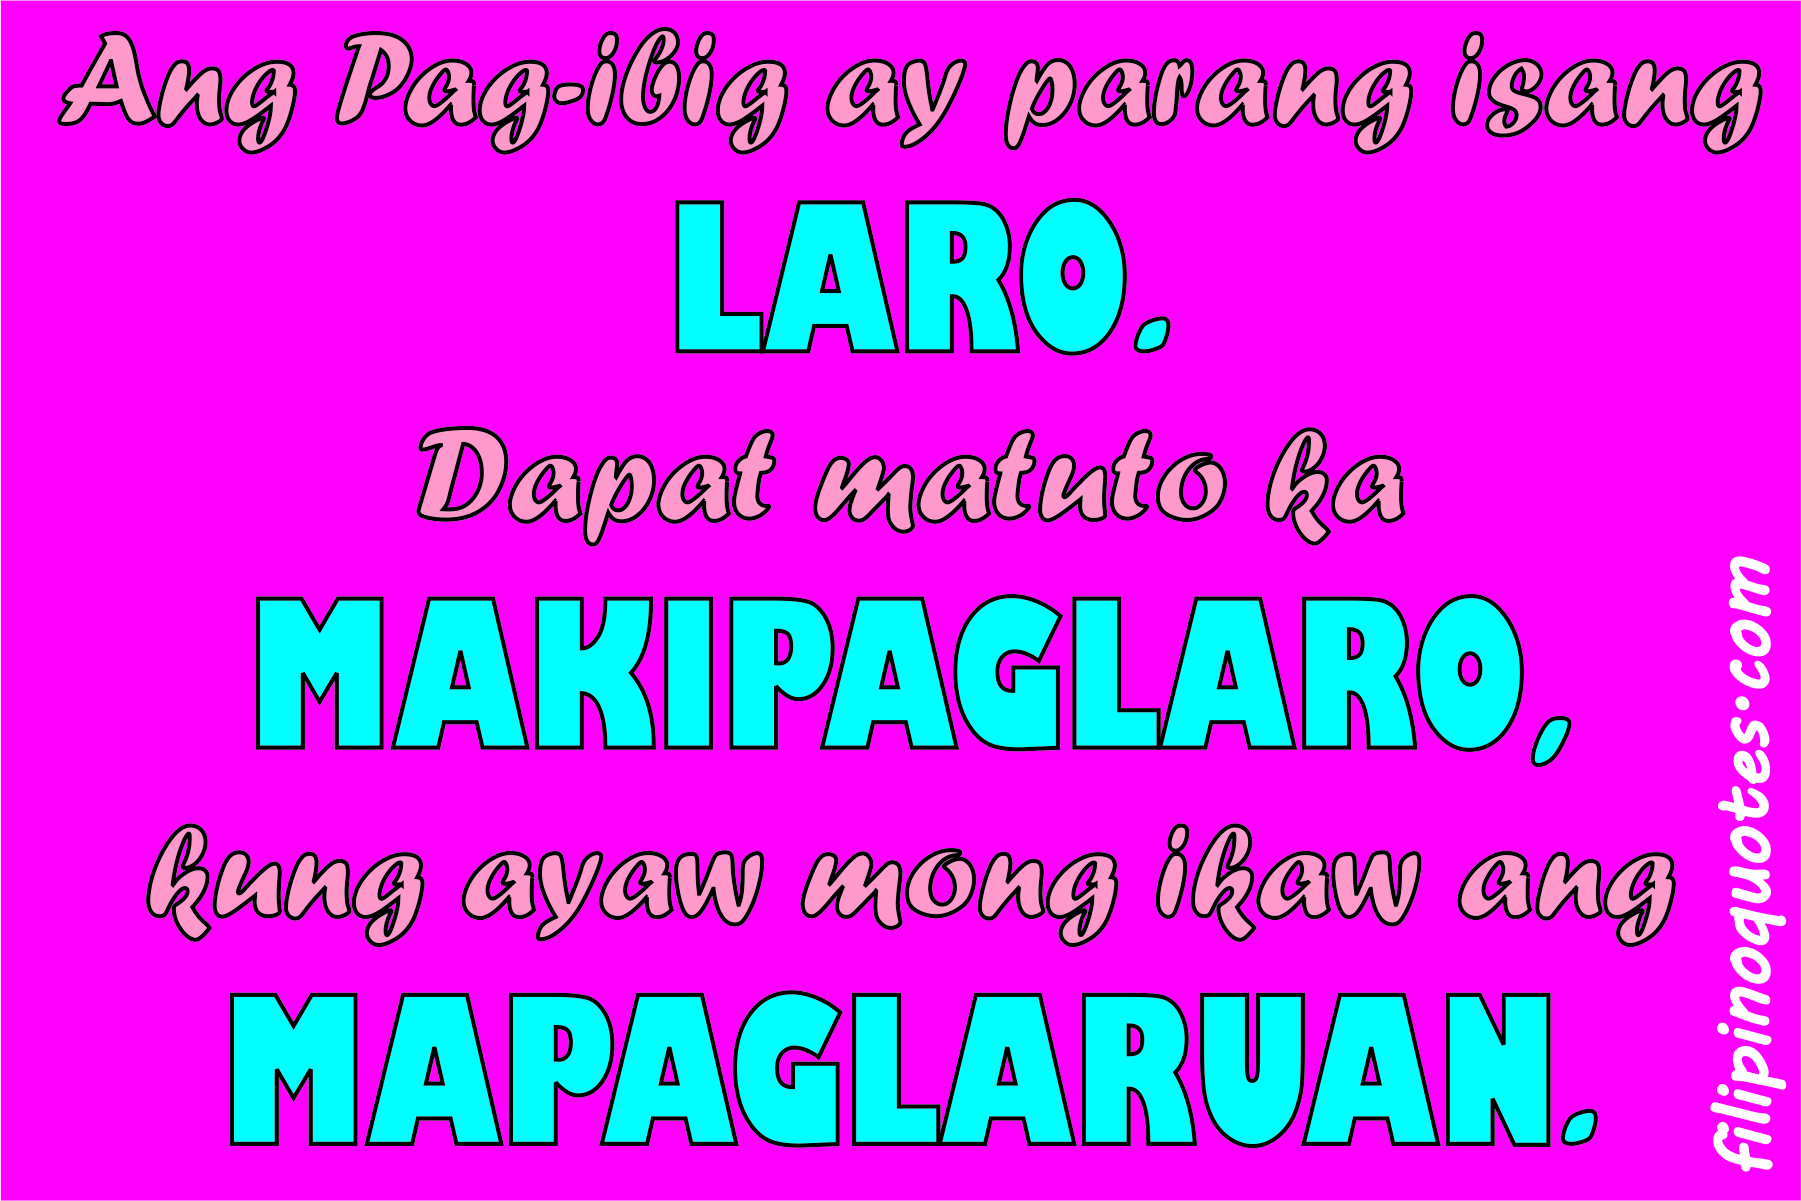 Picture Of Tagalog Love Quotes: Love Quotes Tagalog: May 2015